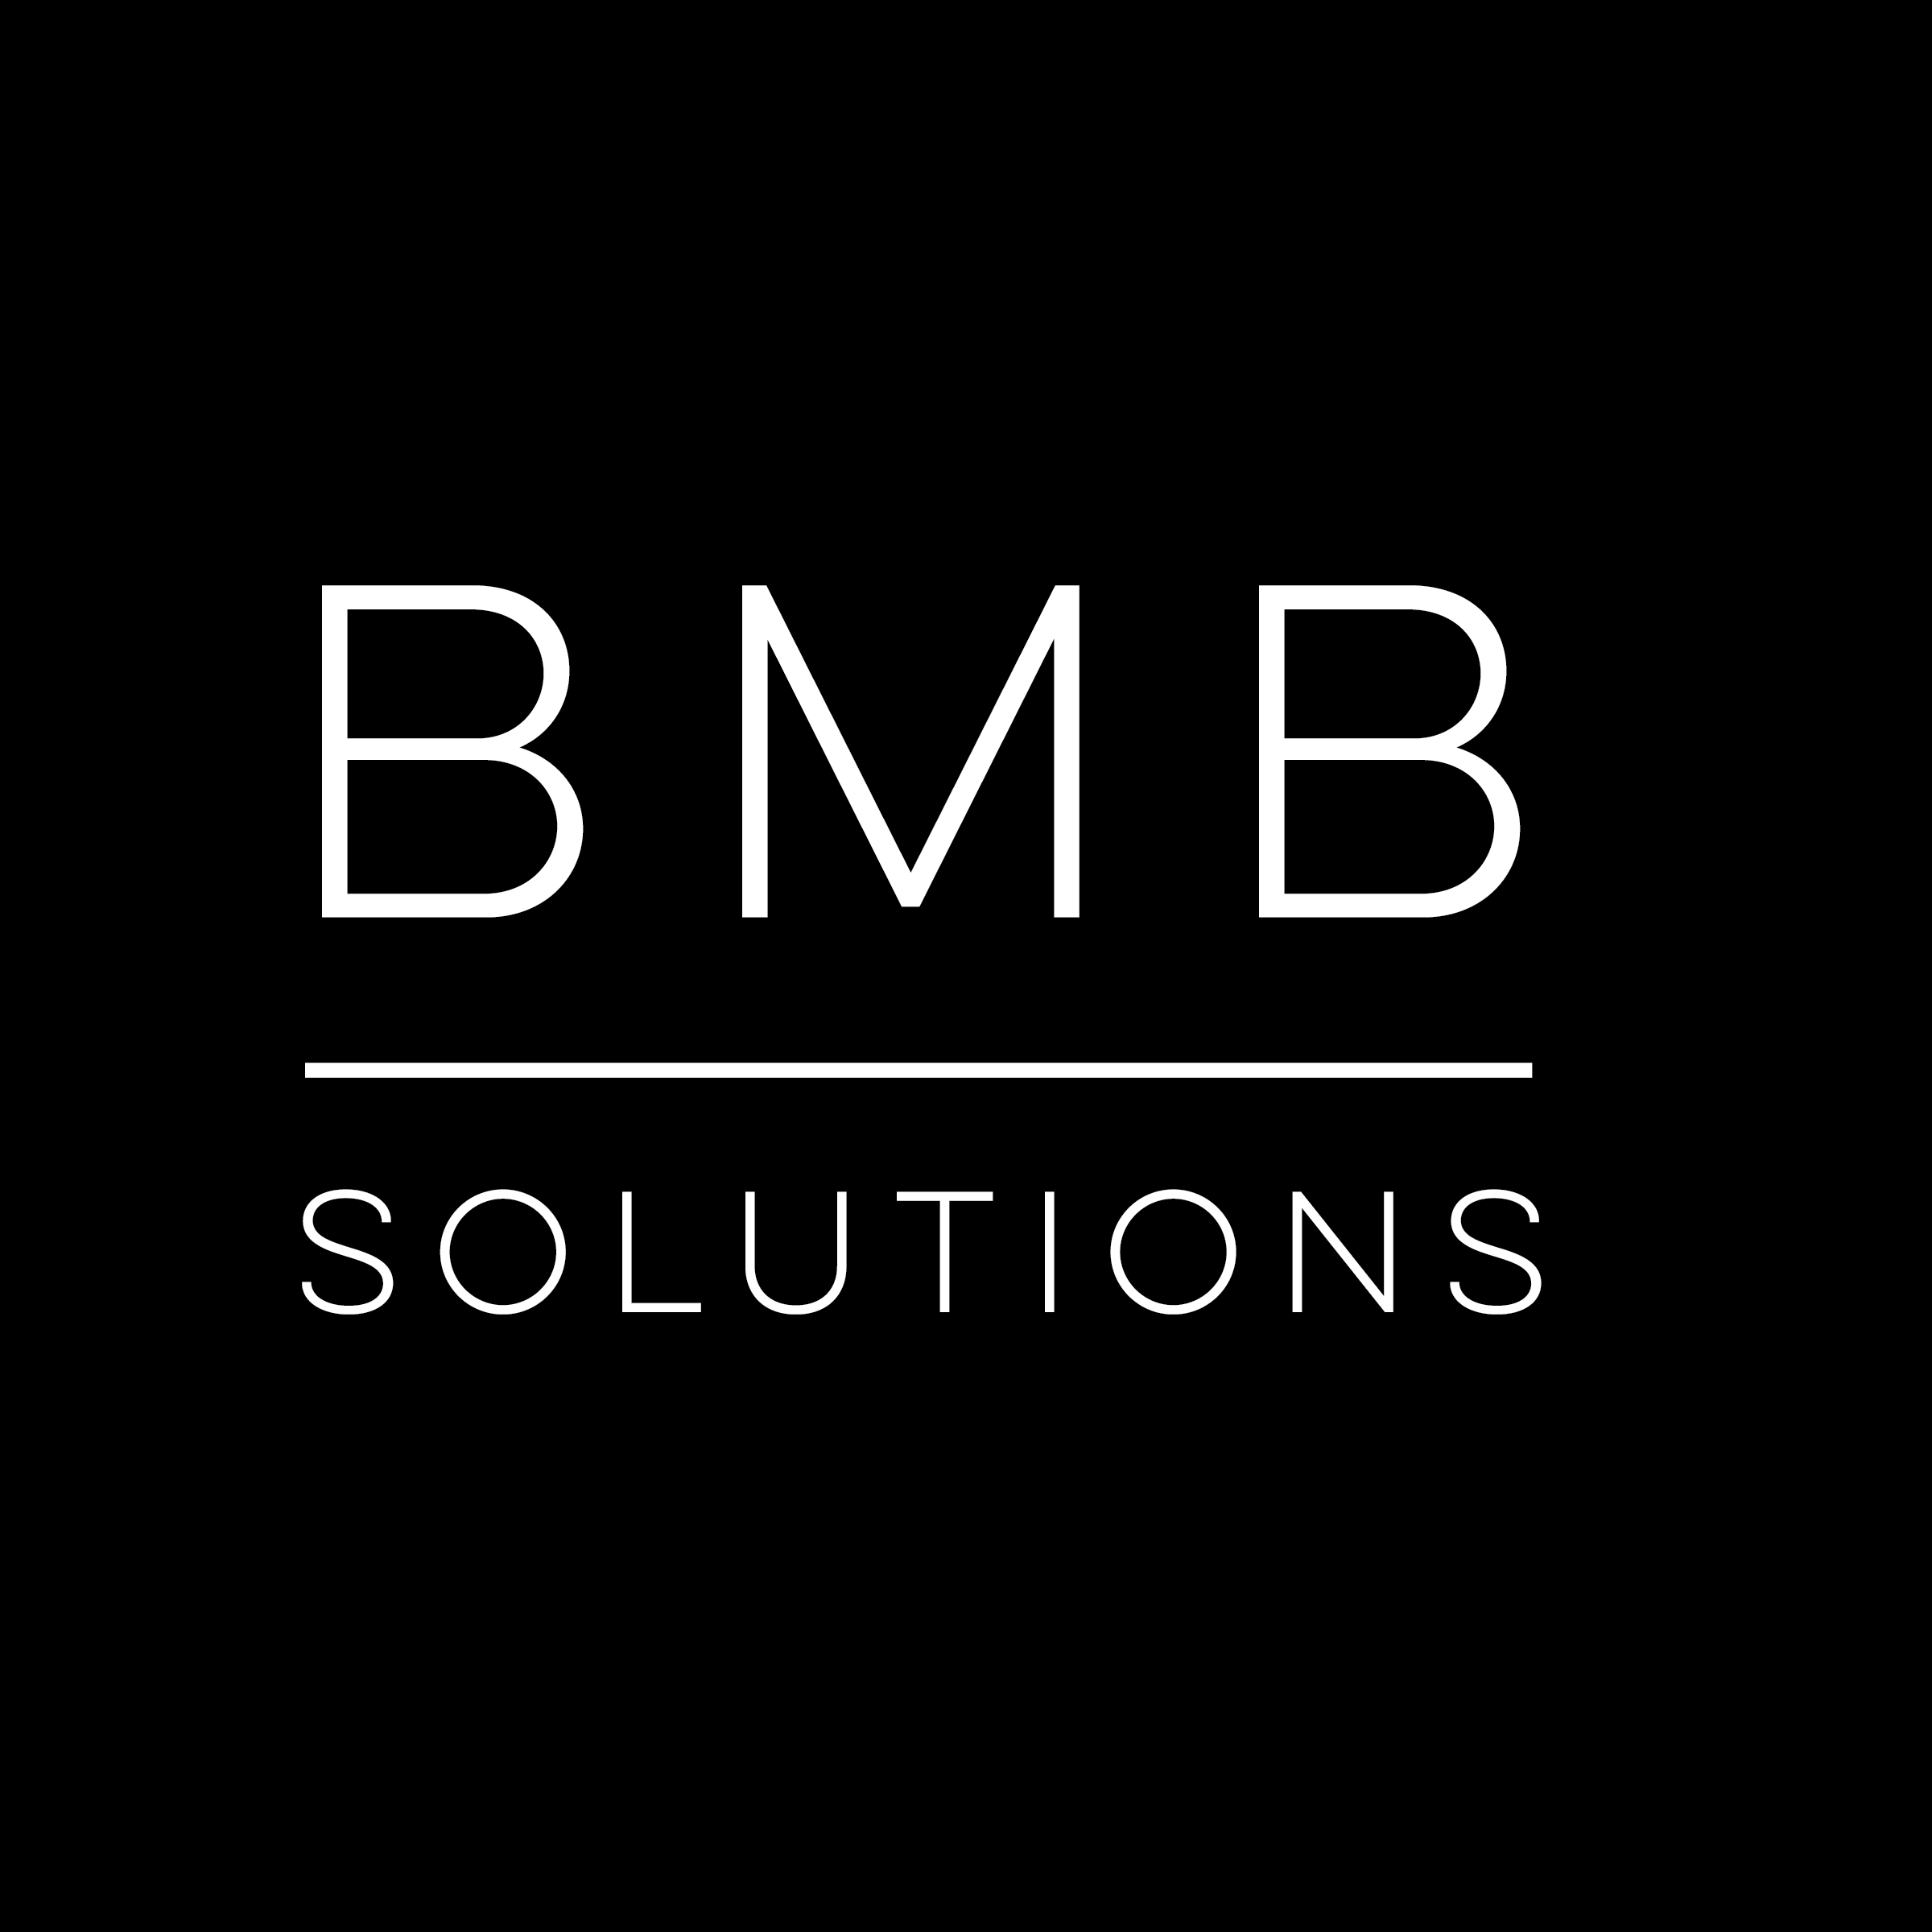 BMB Solutions 360 Motor Parkway Suite 650 Hauppauge, NY Information Technology Services - MapQuest